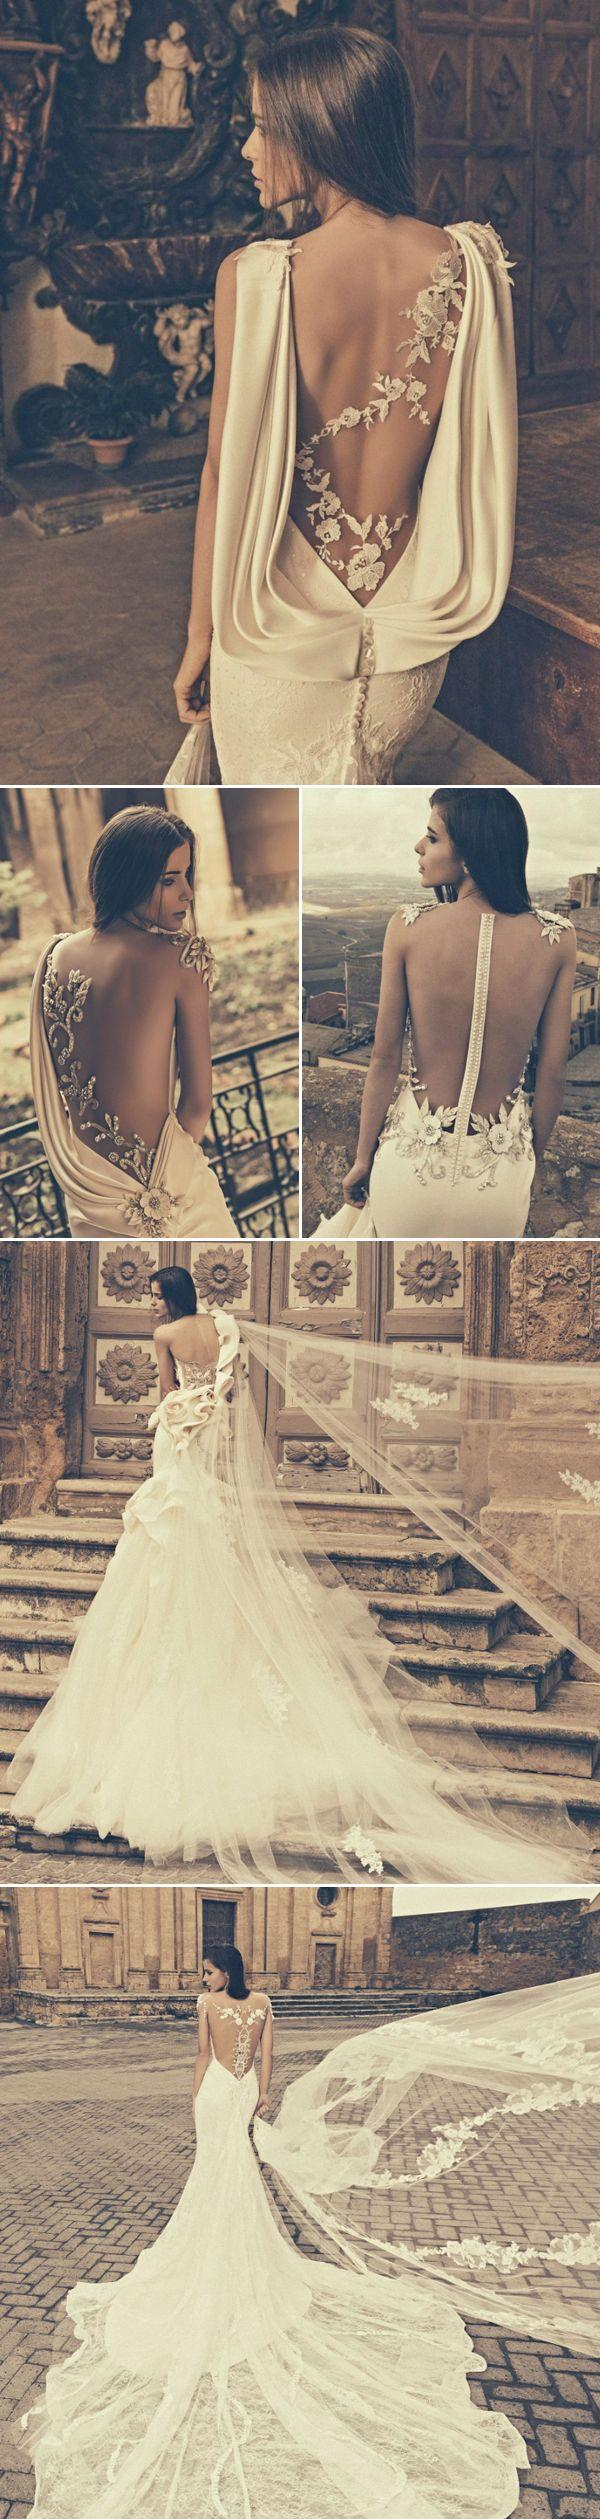 Mariage - 27 Wedding Dresses With Stunning Back Details From 2015 Bridal Market